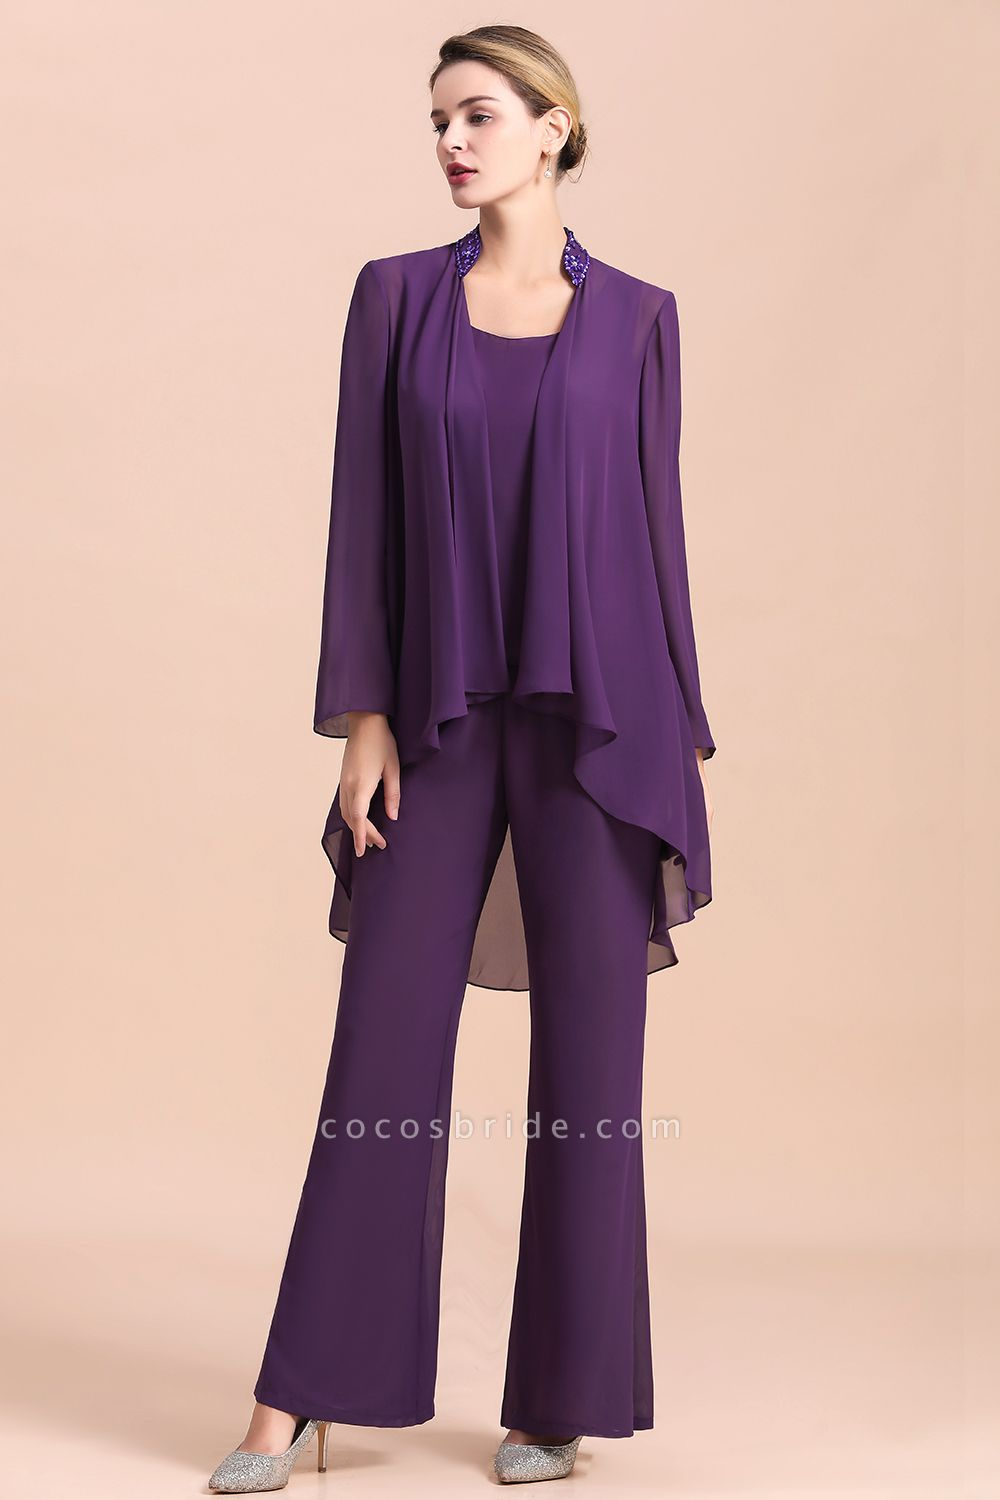 Straps Beading Grape Chiffon Long Sleeve Mother of Bride Jumpsuit With Wrap